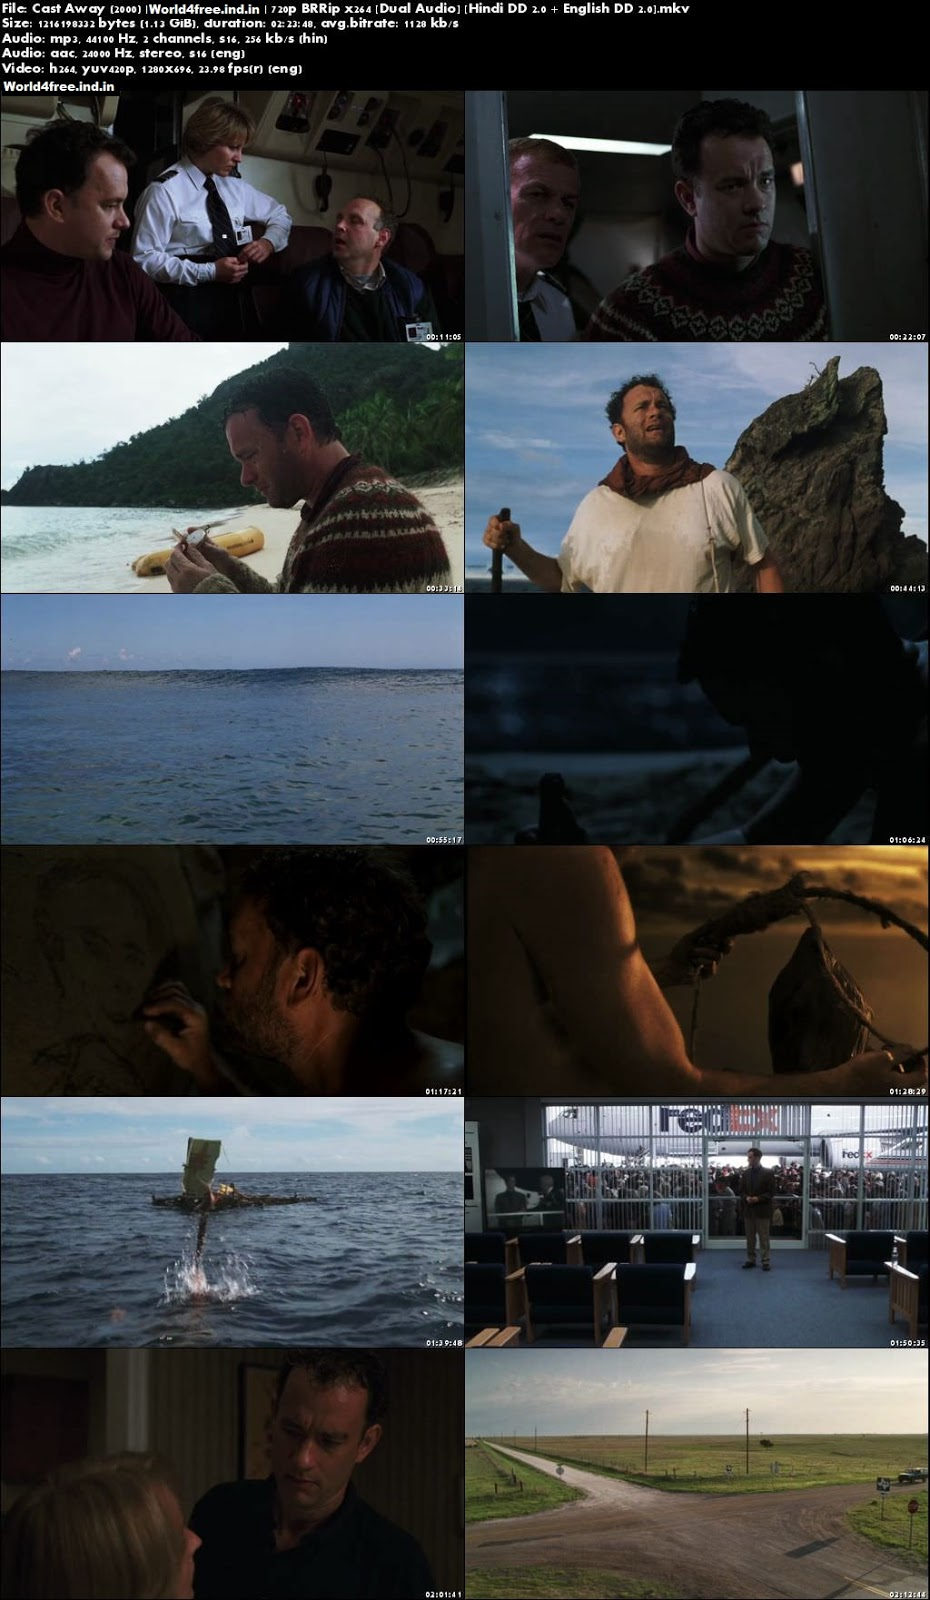 Cast Away 2000 world4free.ind.in Dual Audio BRRip 720p Hindi English